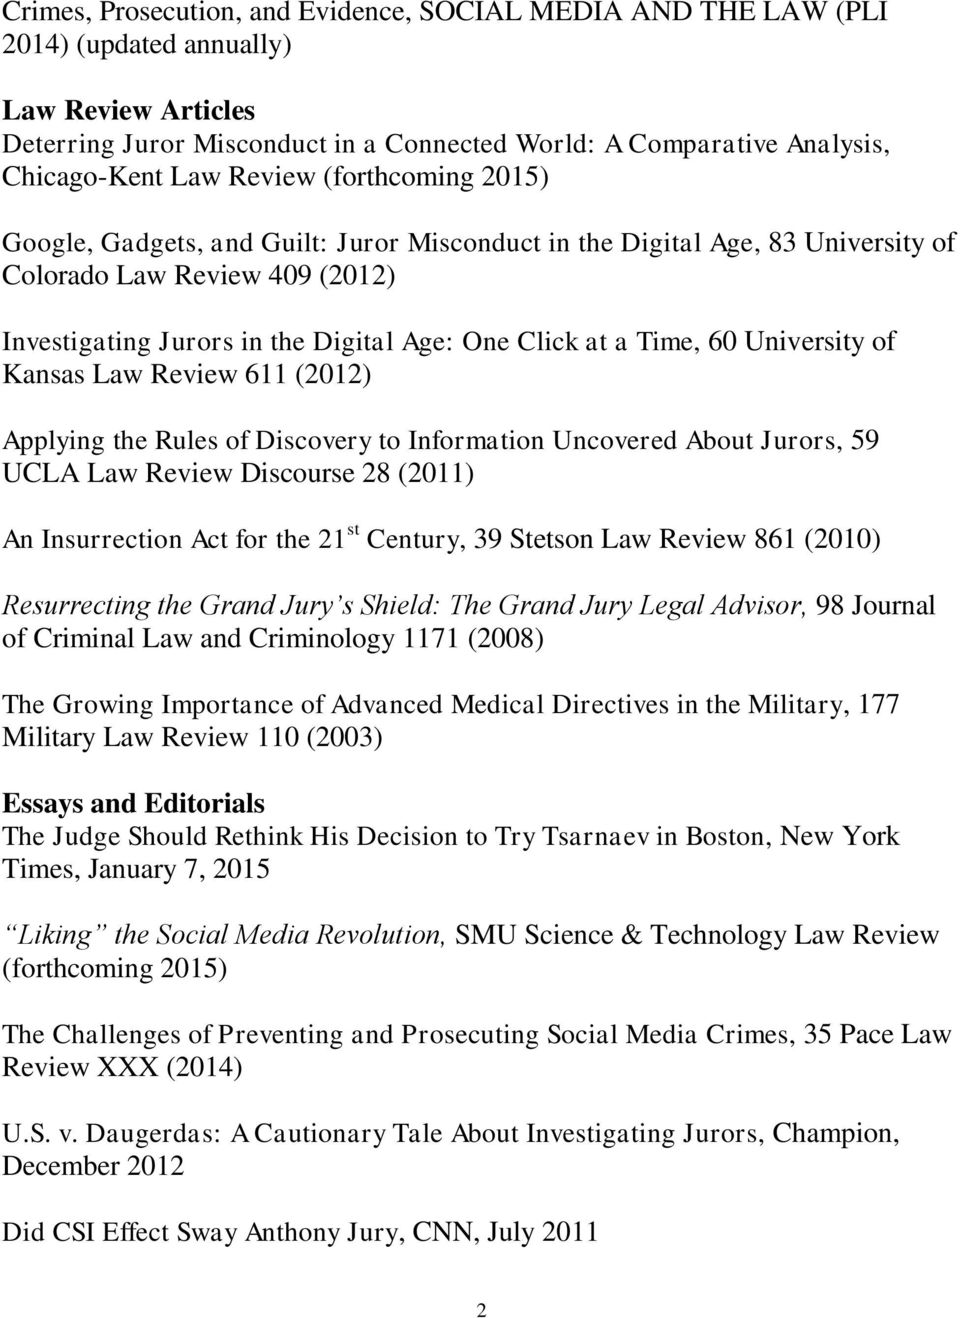 Time, 60 University of Kansas Law Review 611 (2012) Applying the Rules of Discovery to Information Uncovered About Jurors, 59 UCLA Law Review Discourse 28 (2011) An Insurrection Act for the 21 st